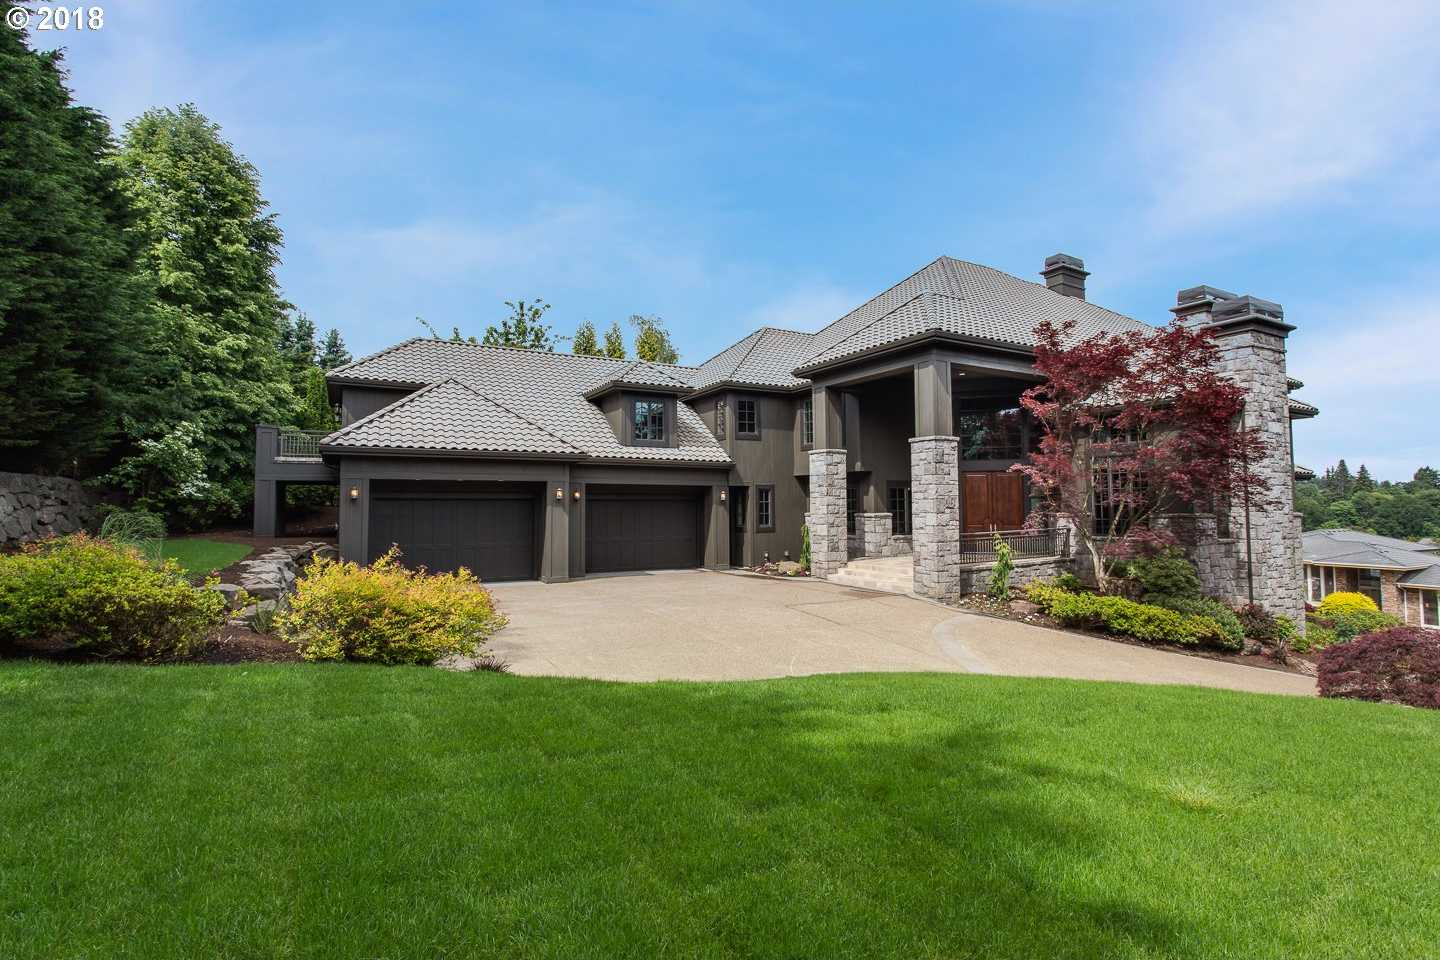 $3,199,000 - 5Br/9Ba -  for Sale in West Linn